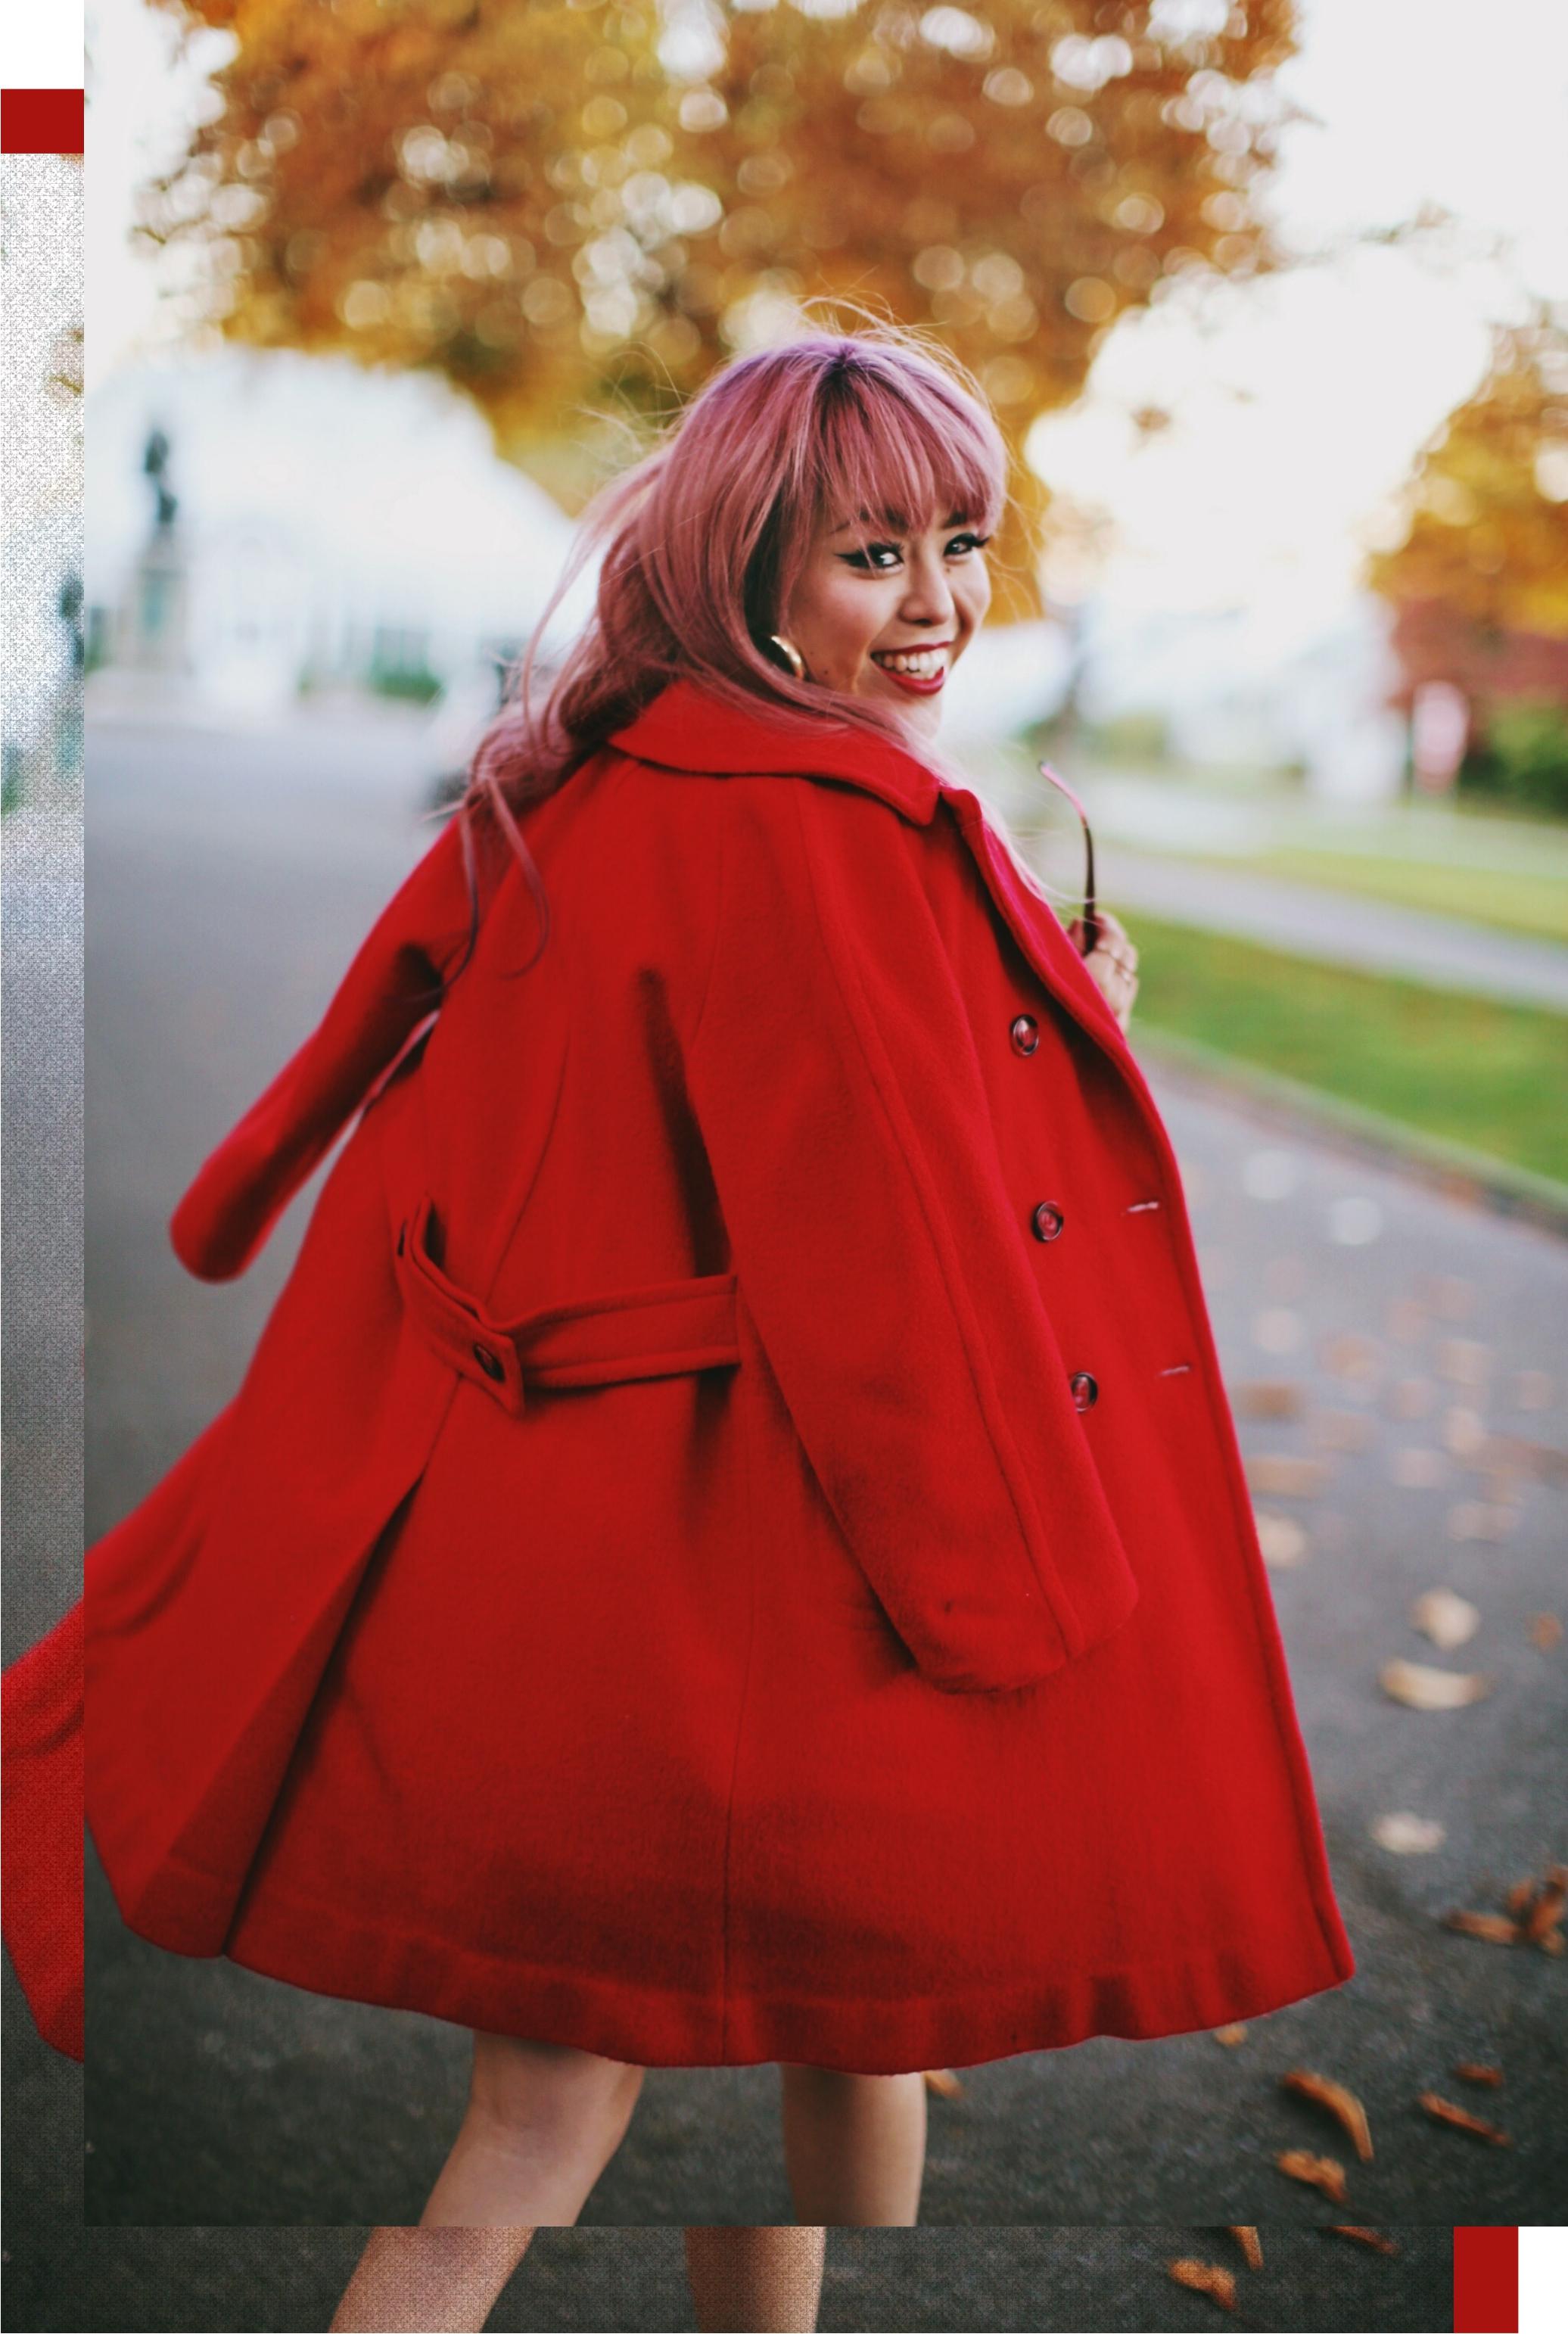 Vintage Red Coat-Red oversized sweater-zara faux leather red mini skirt-Nasty Gal Red ankle Boots-Free People Red framed sunglasses-kara red boxy bag-Daniel Wellington rose gold petite watch-Aikas Love Closet-Seattle style fashion blogger-japanese-pink hair-unicorn hair 7